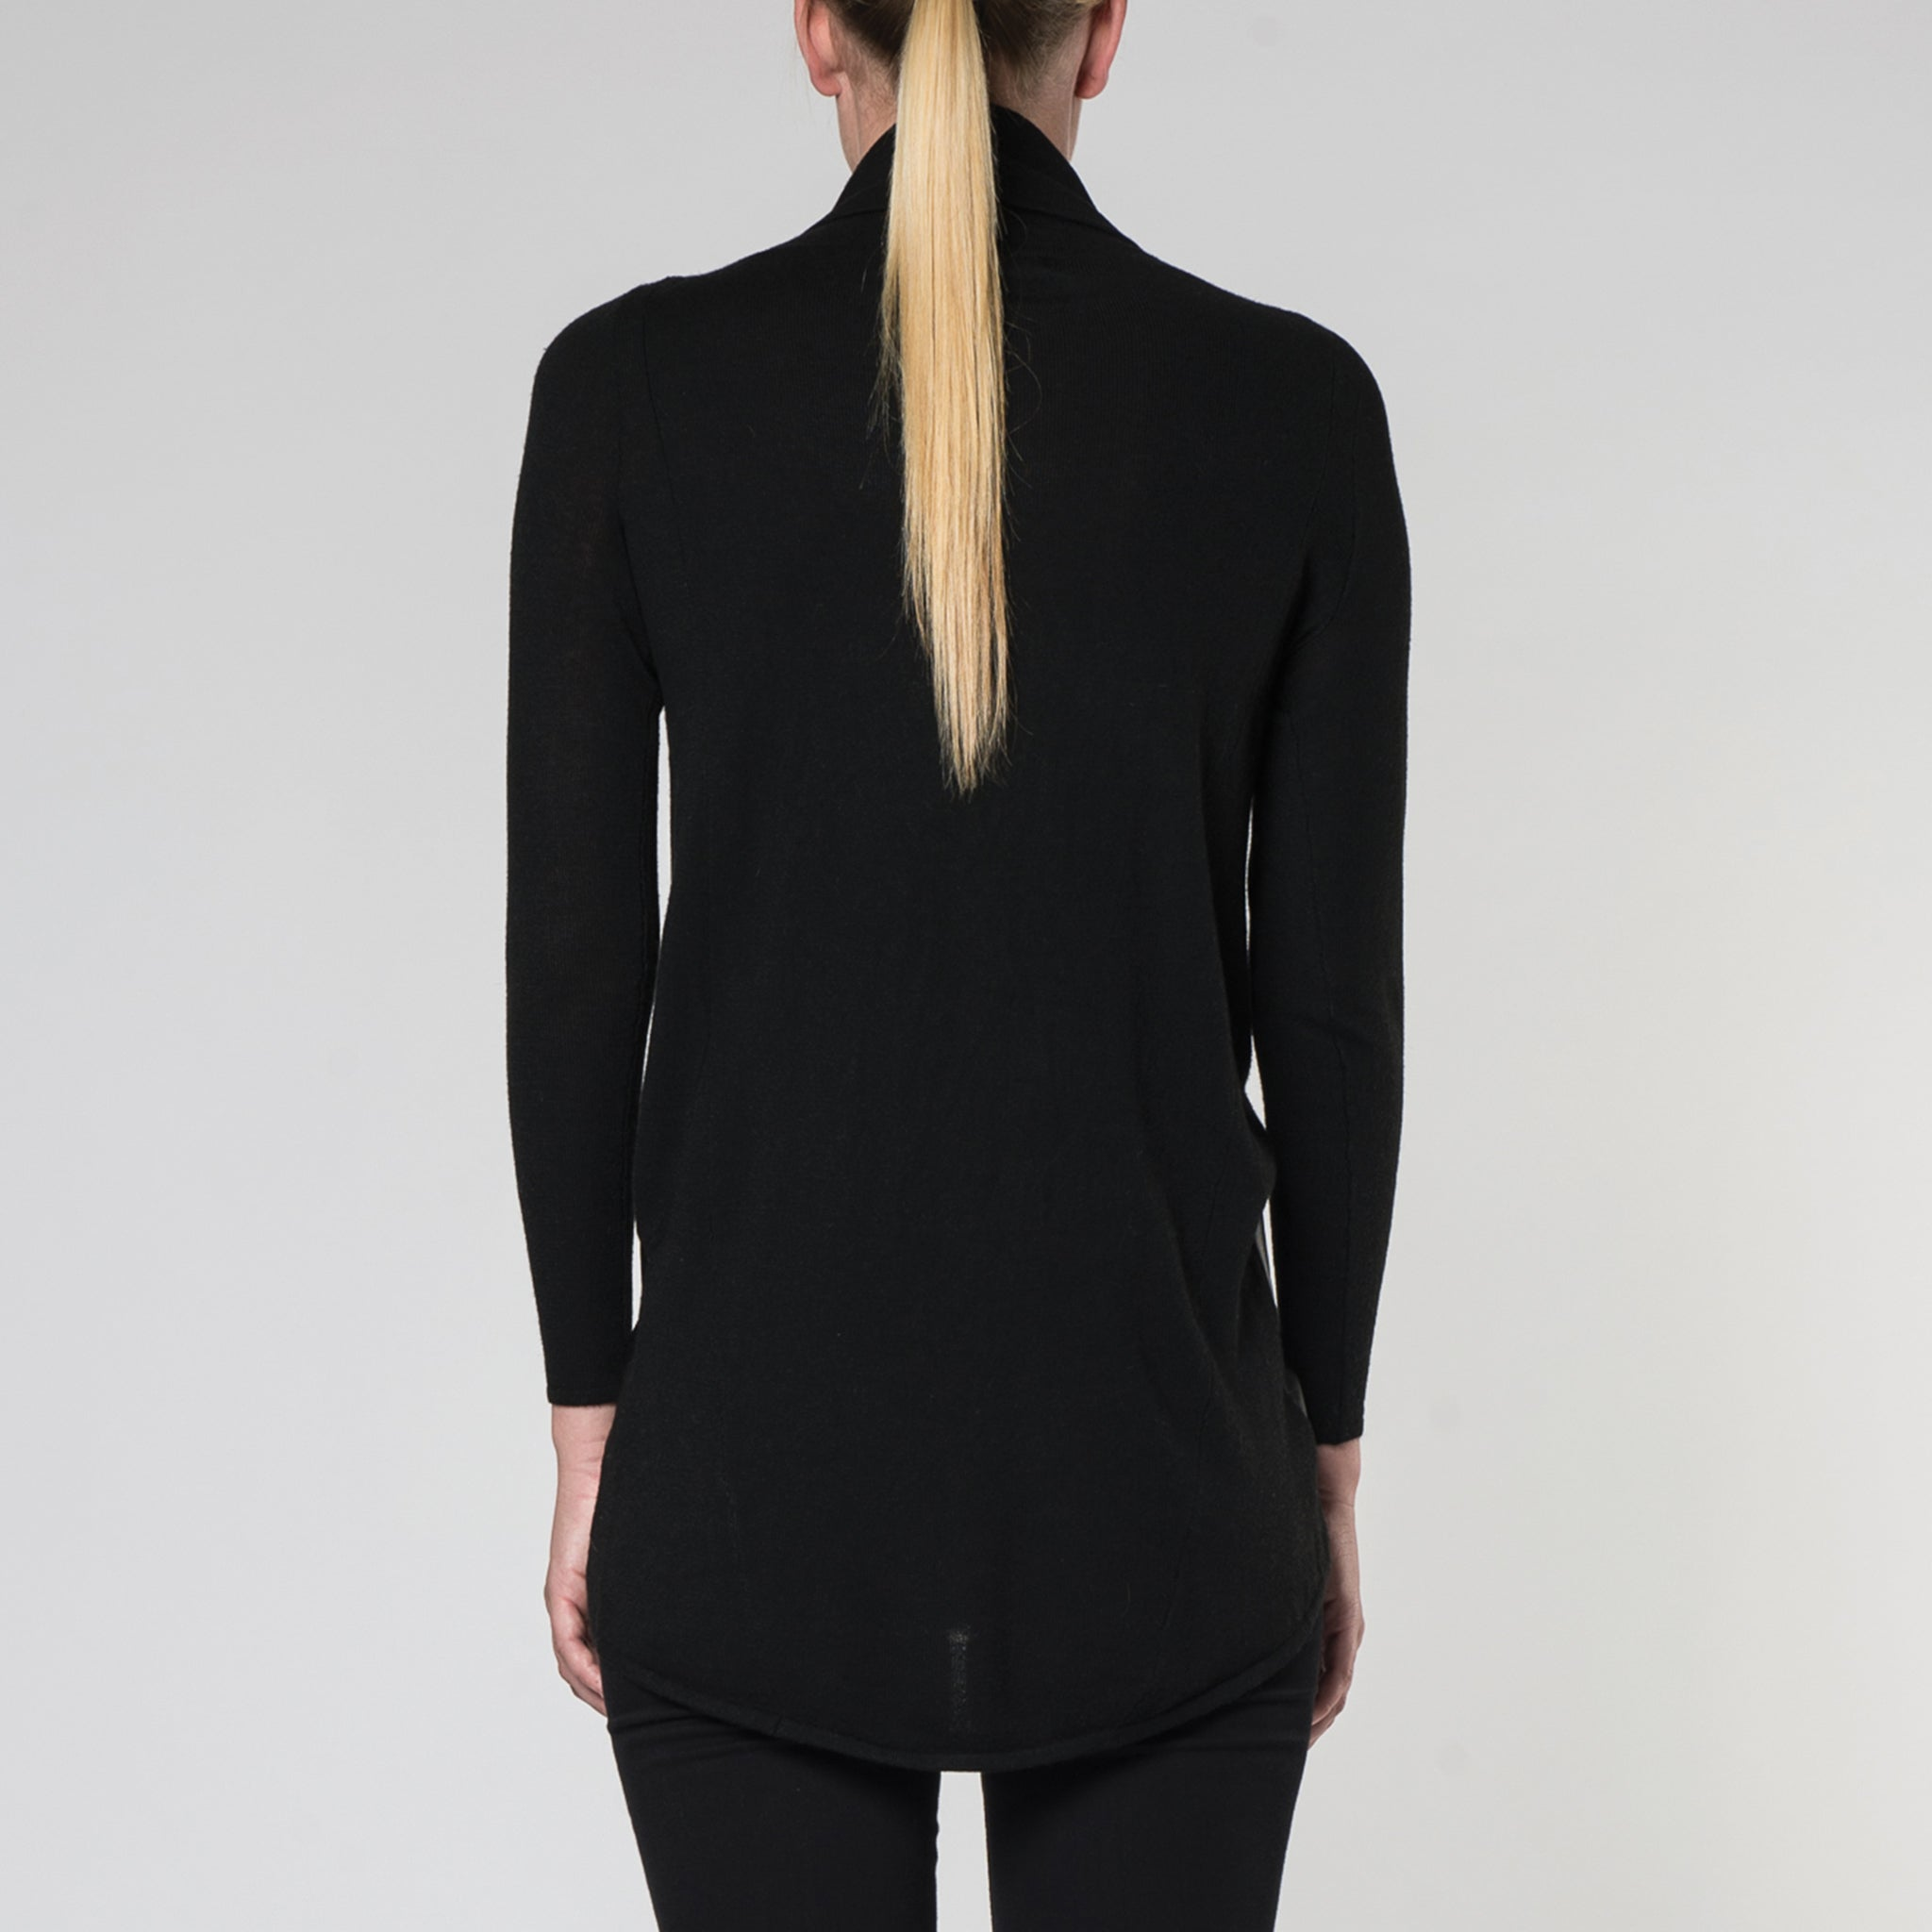 Suki Long Sleeve Knit and Leather Spliced Tuic Top